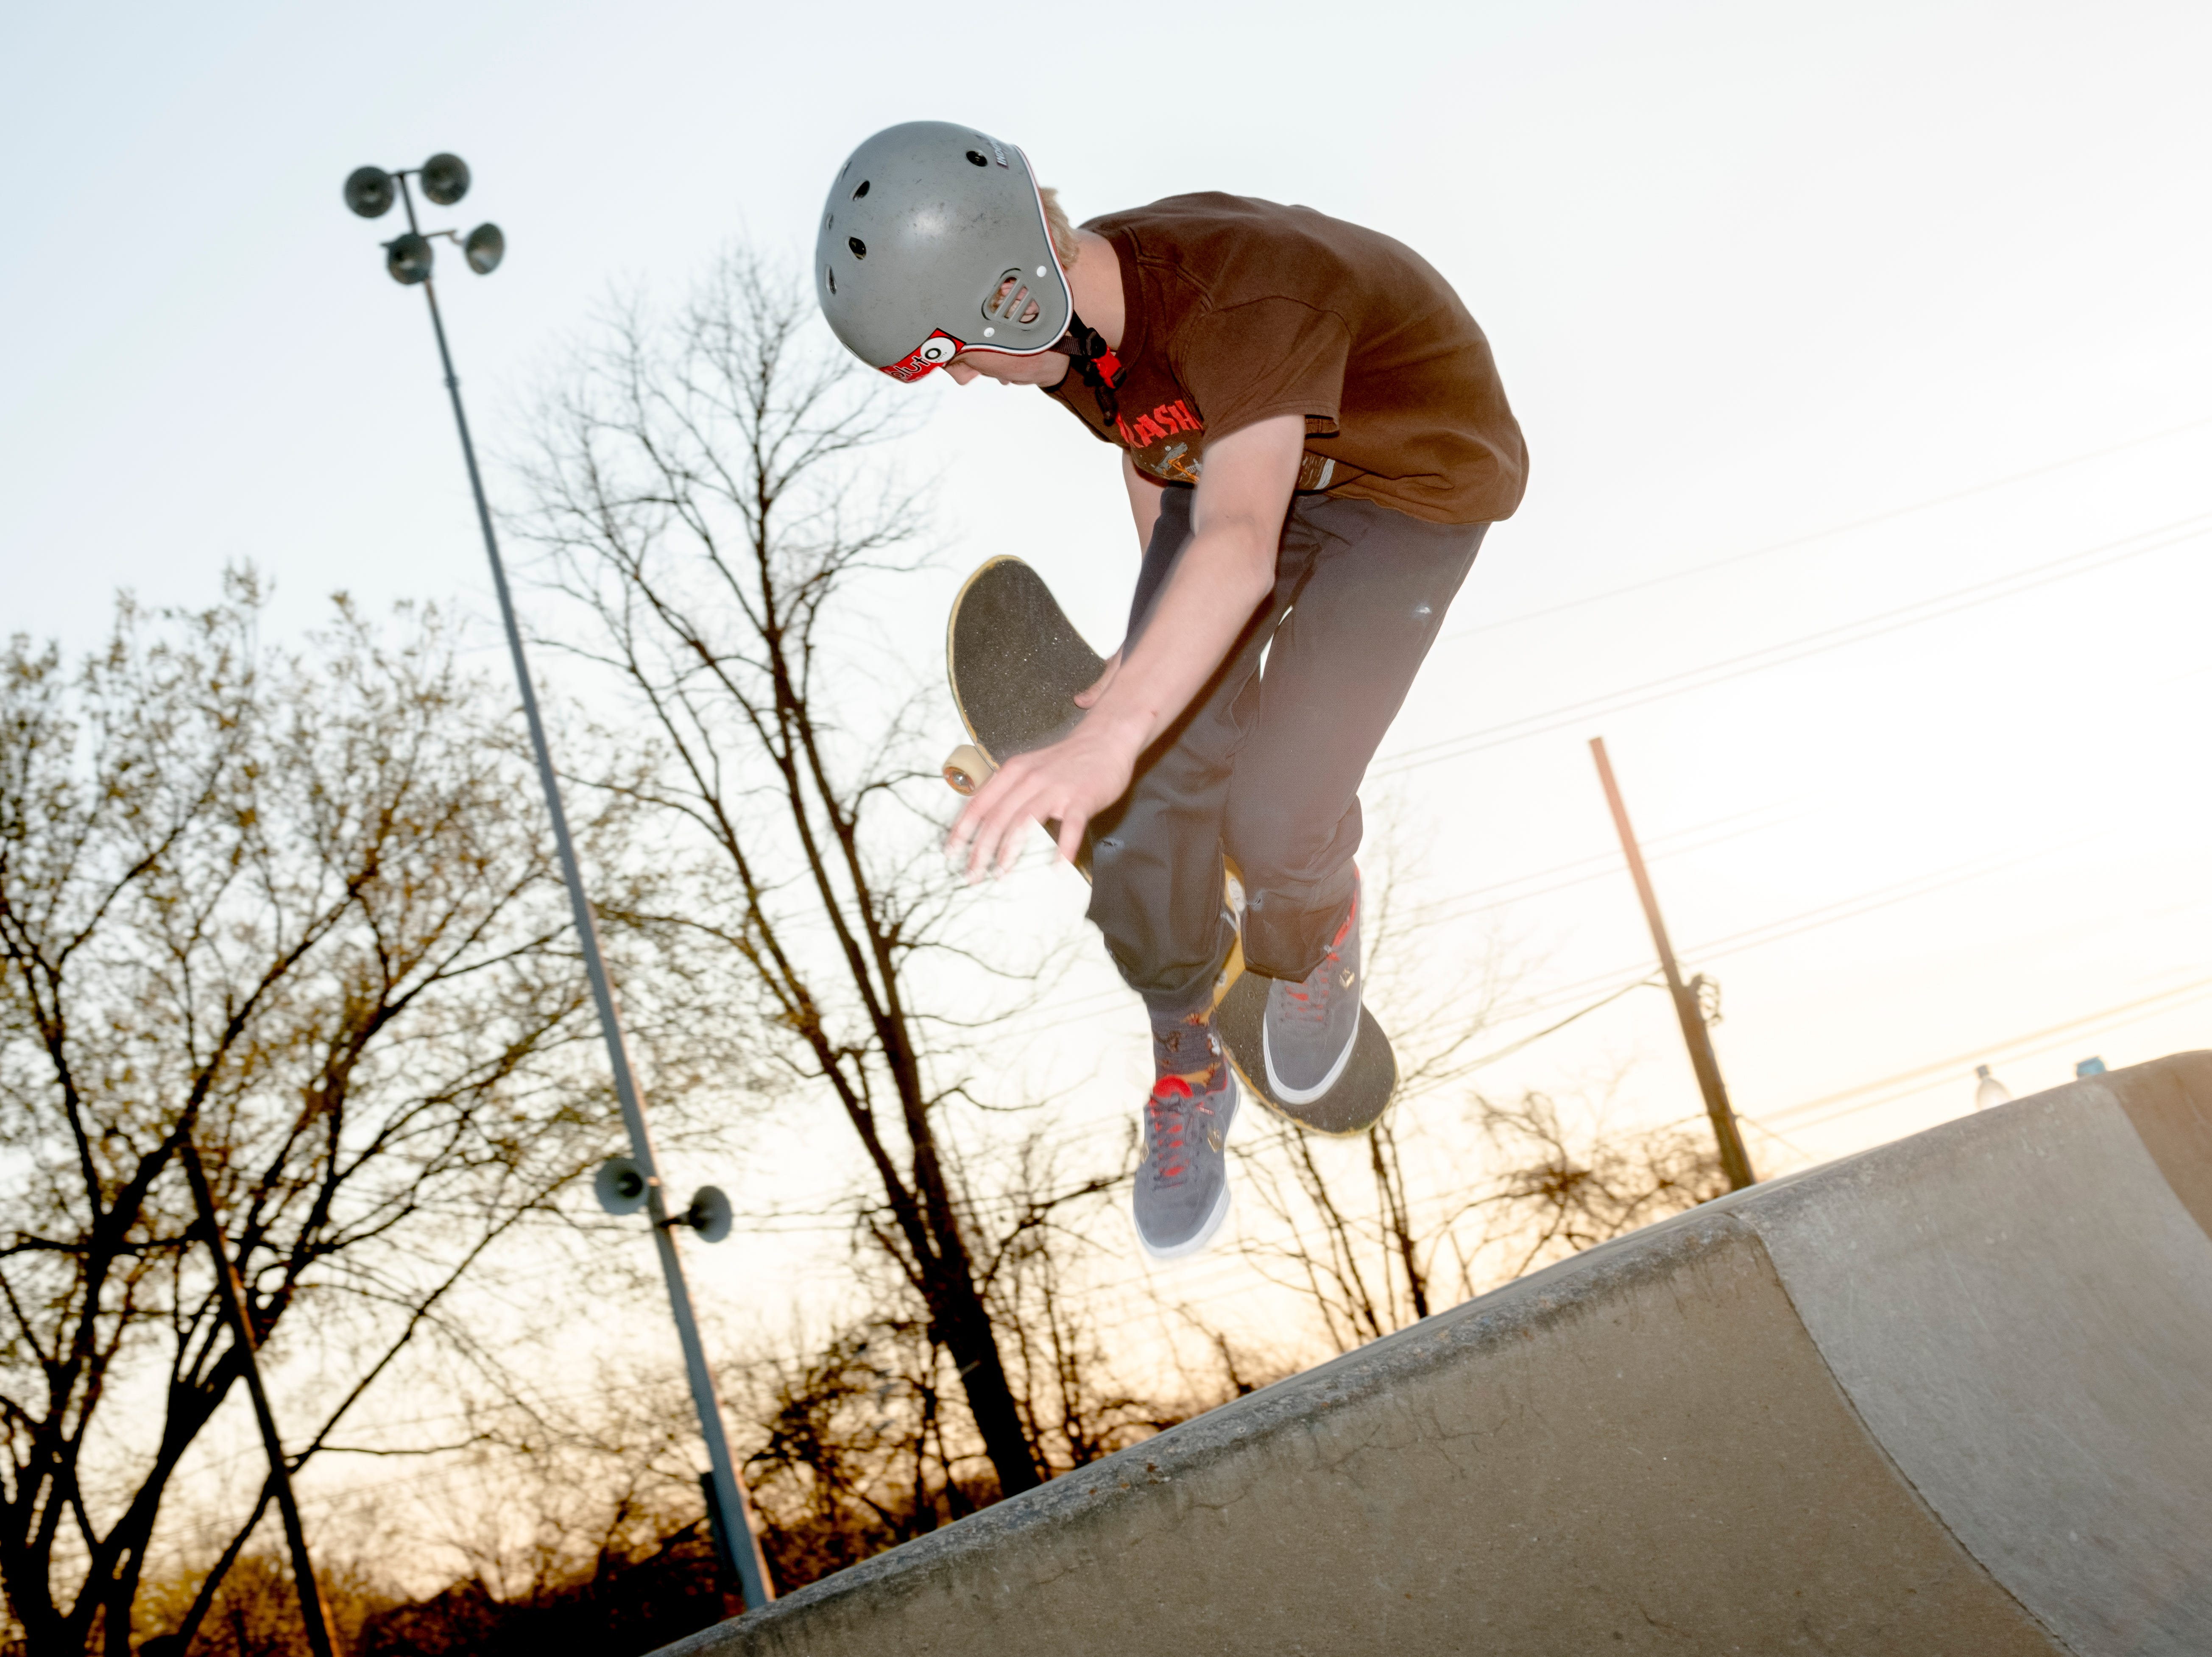 "James Cassell, a sophomore at L&N STEM Academy, does a trick while skateboarding at the Knoxville Skatepark in Knoxville, Tennessee on Tuesday, April 2, 2019. Cassell has been boarding for two and a half years after watching his older brother skateboard. His favorite part about it? Landing new tricks is the ""best feeling in the world,"" he said."